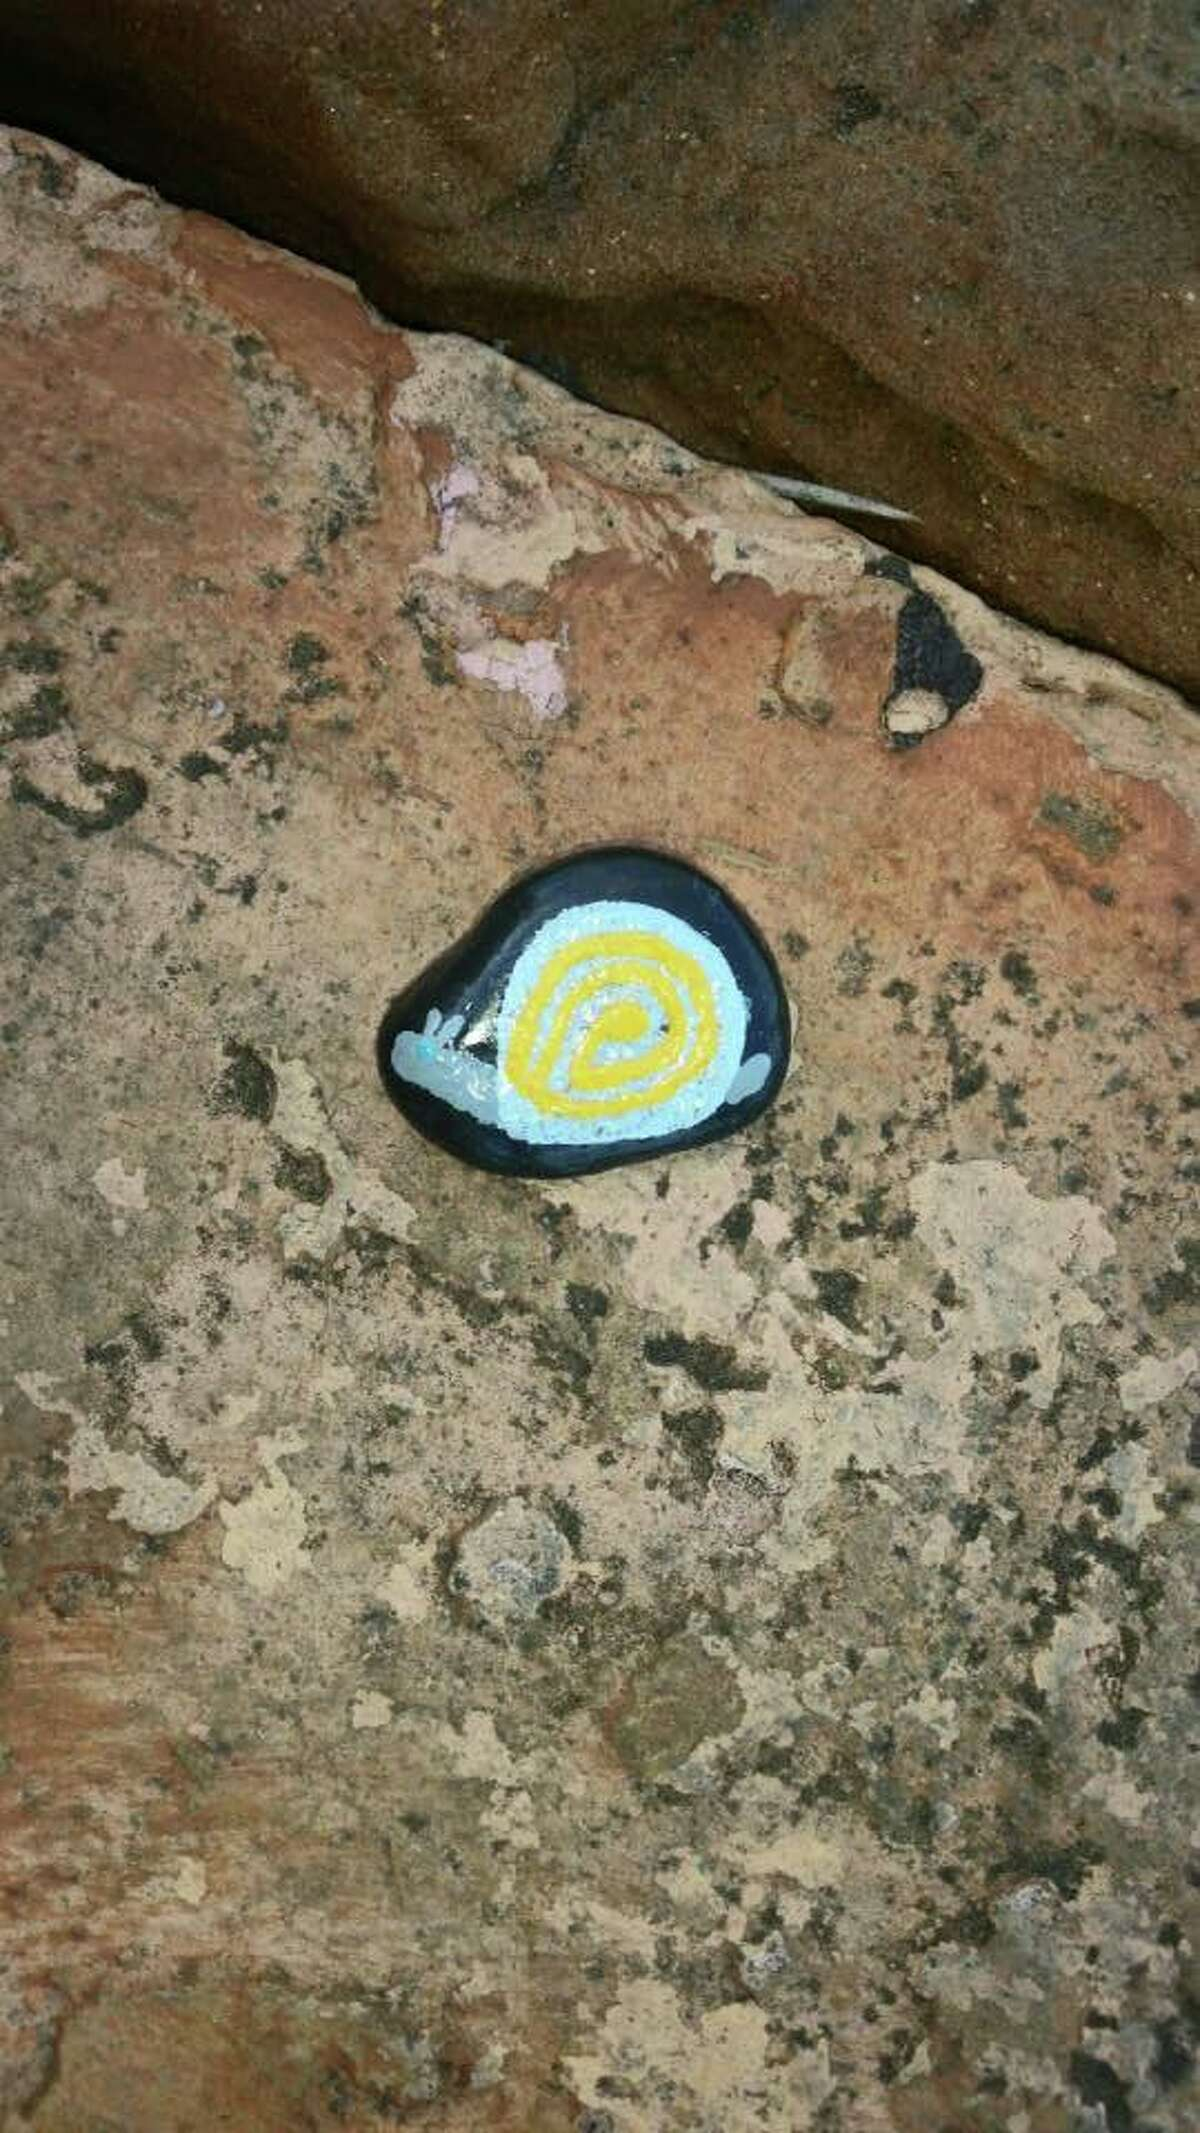 Using clues and photos posted to the 'Vidor Rocks' Facebook group, residents search for painted rocks - some of which boast creative designs - throughout the community. The Facebook group has more than 2,000 members.